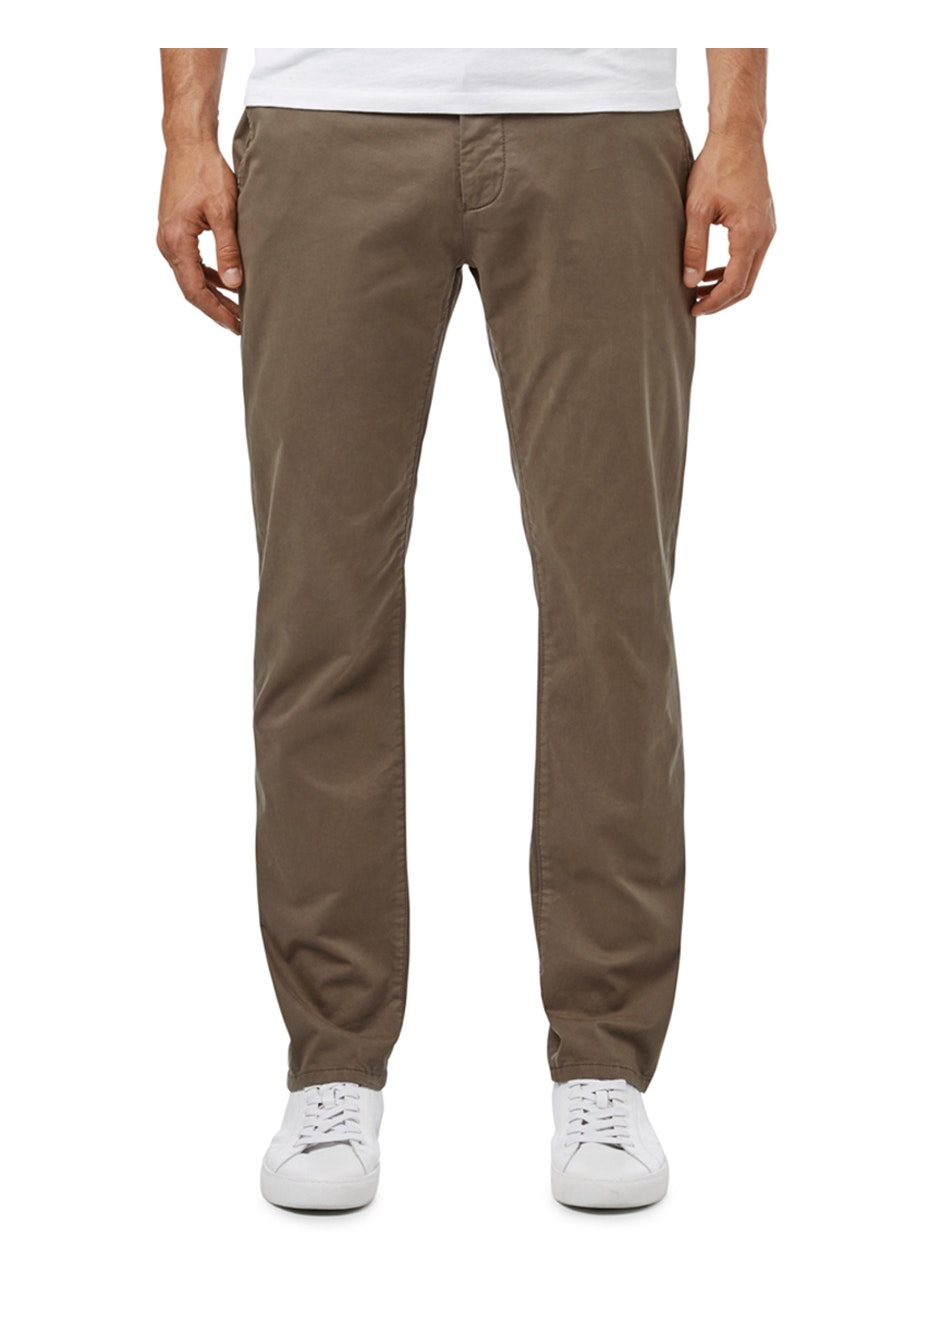 French Connection - Roger Regular Chino Pant - Burnt Aubergine